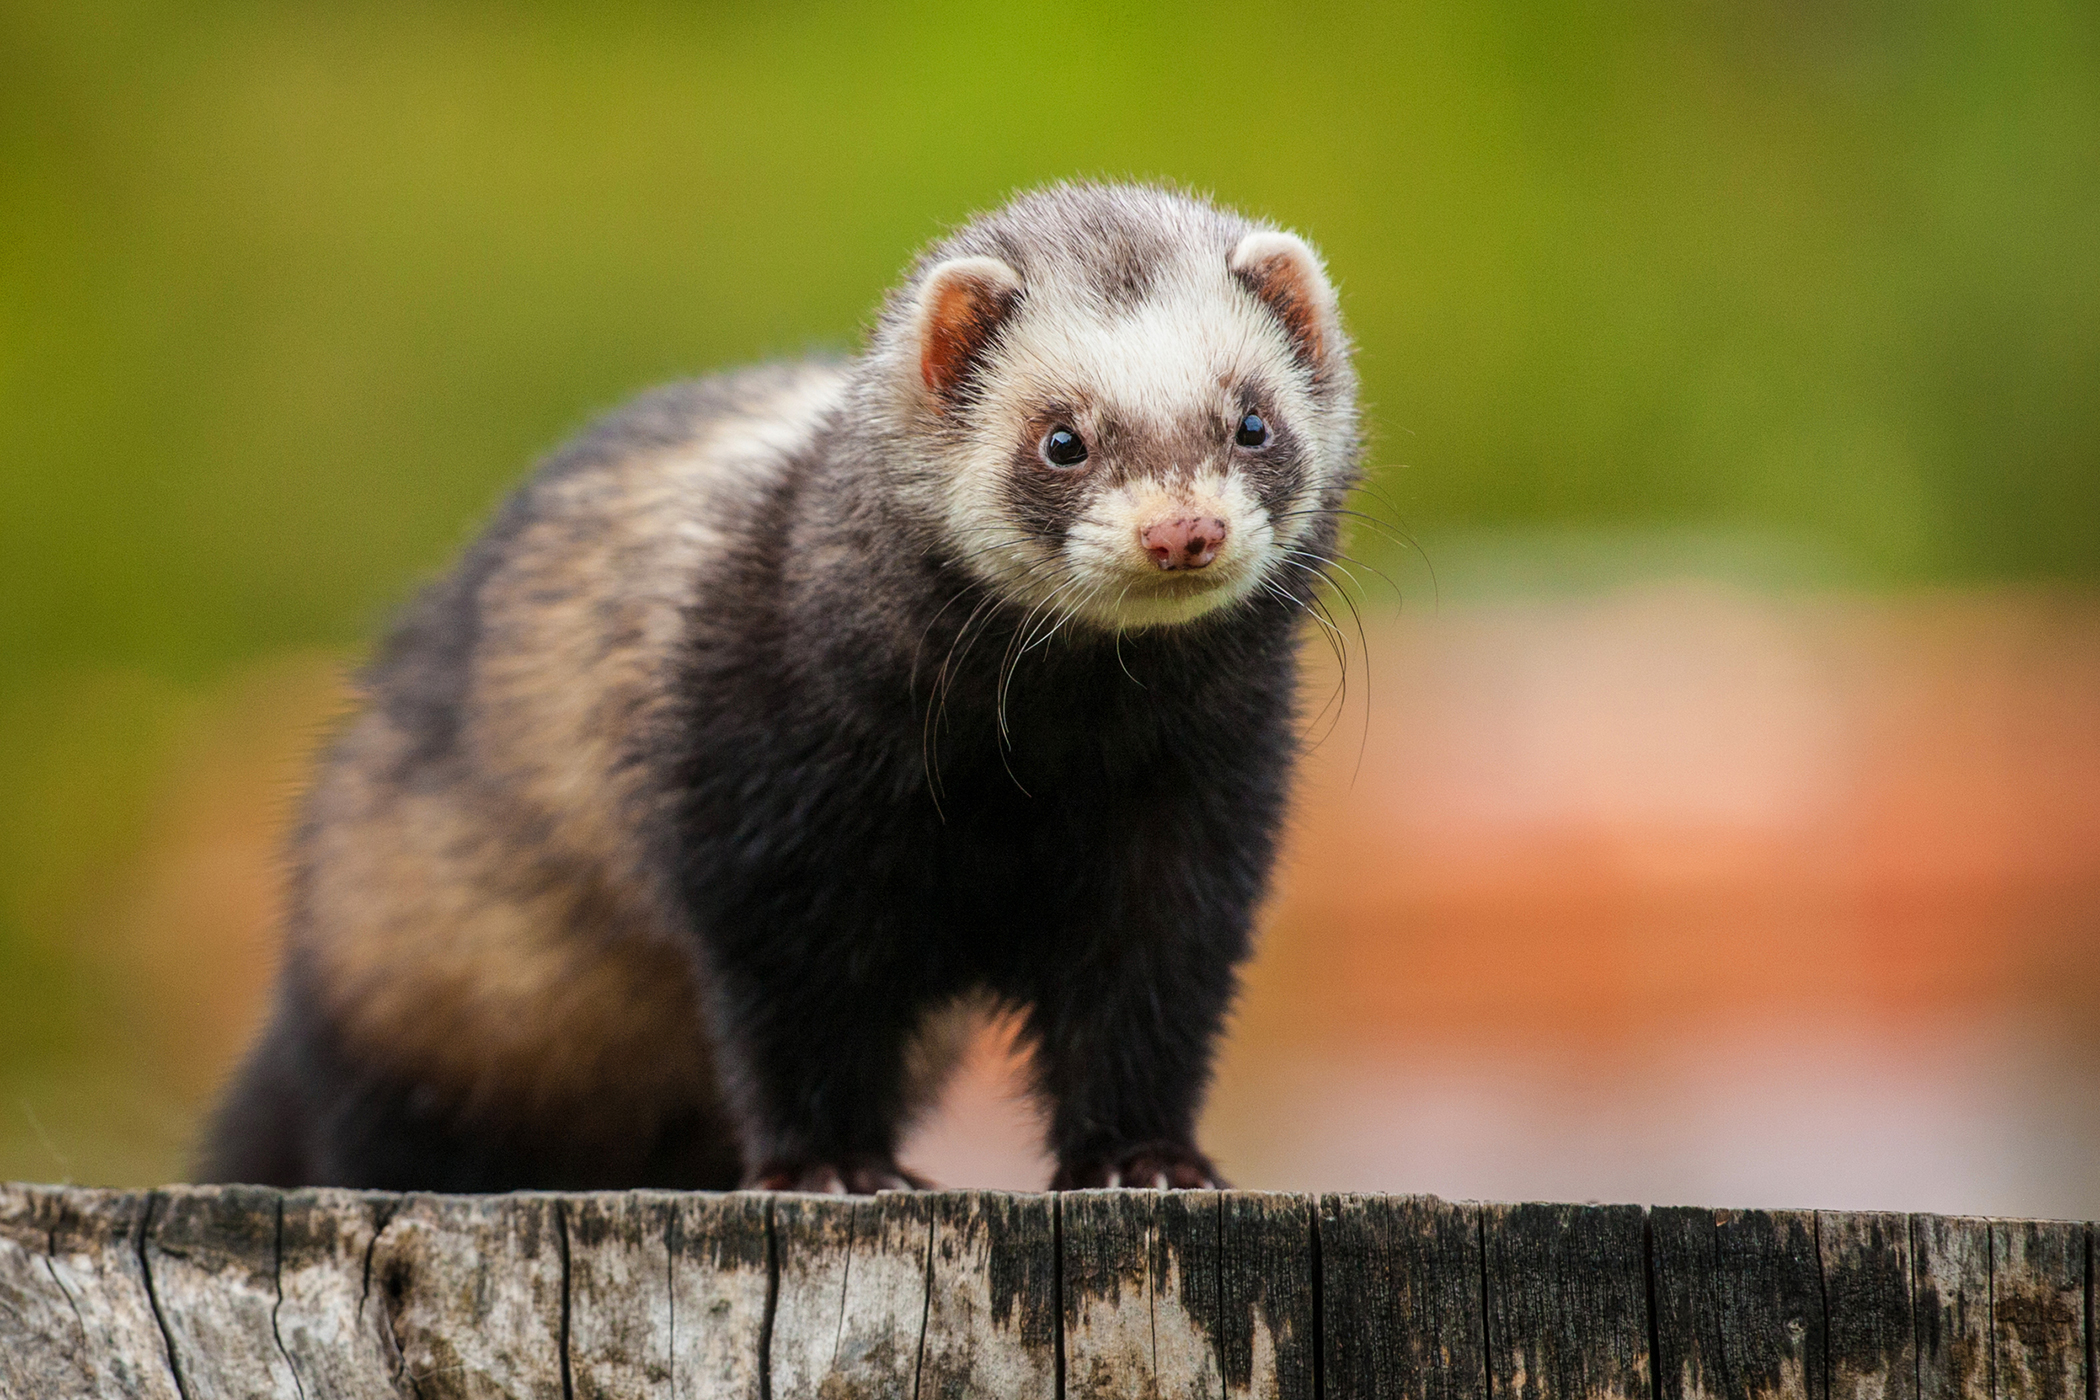 Hind Leg Weakness in Ferrets